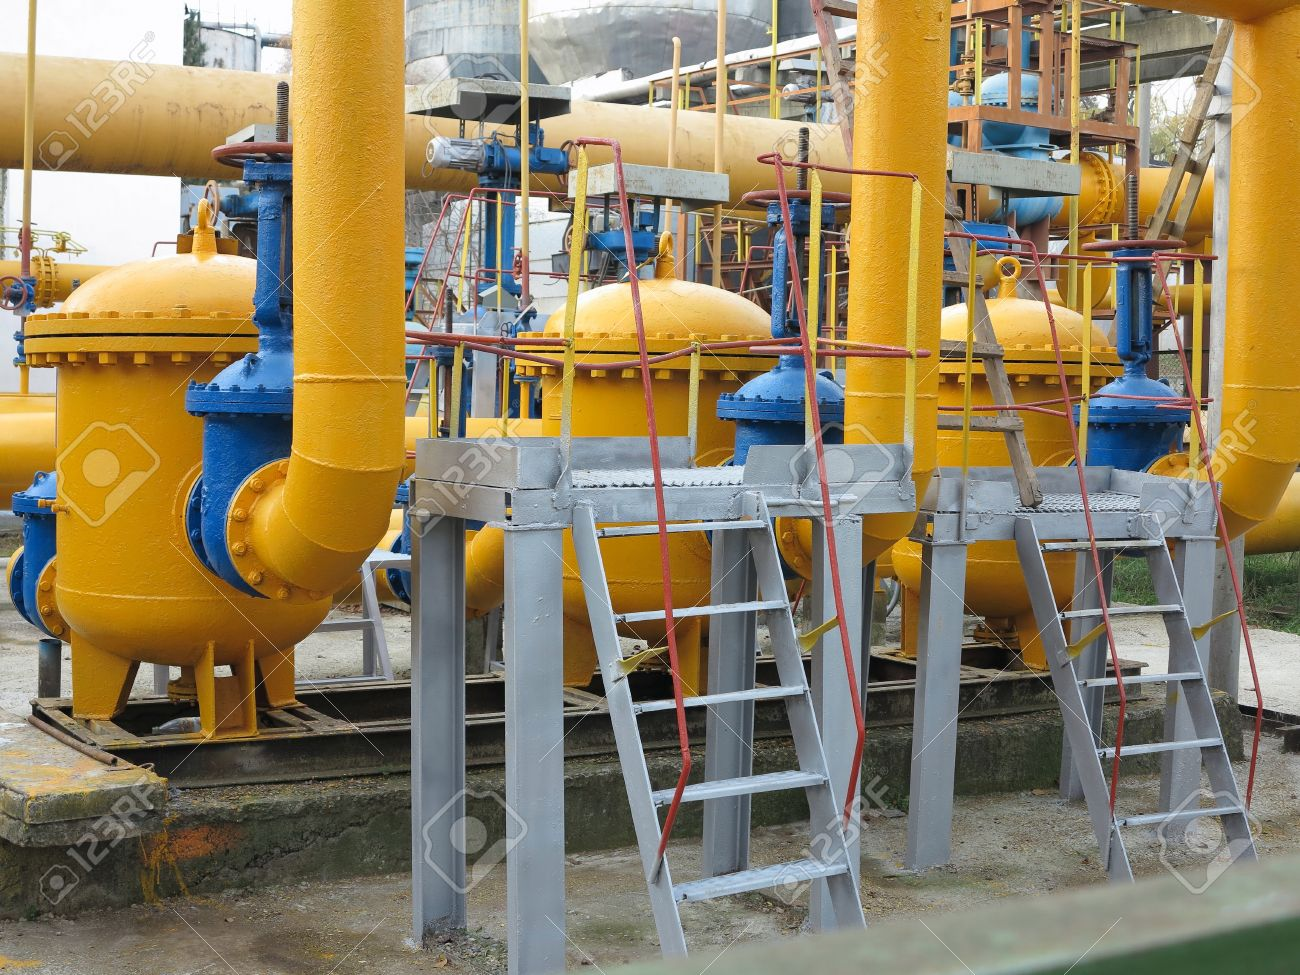 Natural gas station with yellow pipes at power plant Stock Photo - 17364855